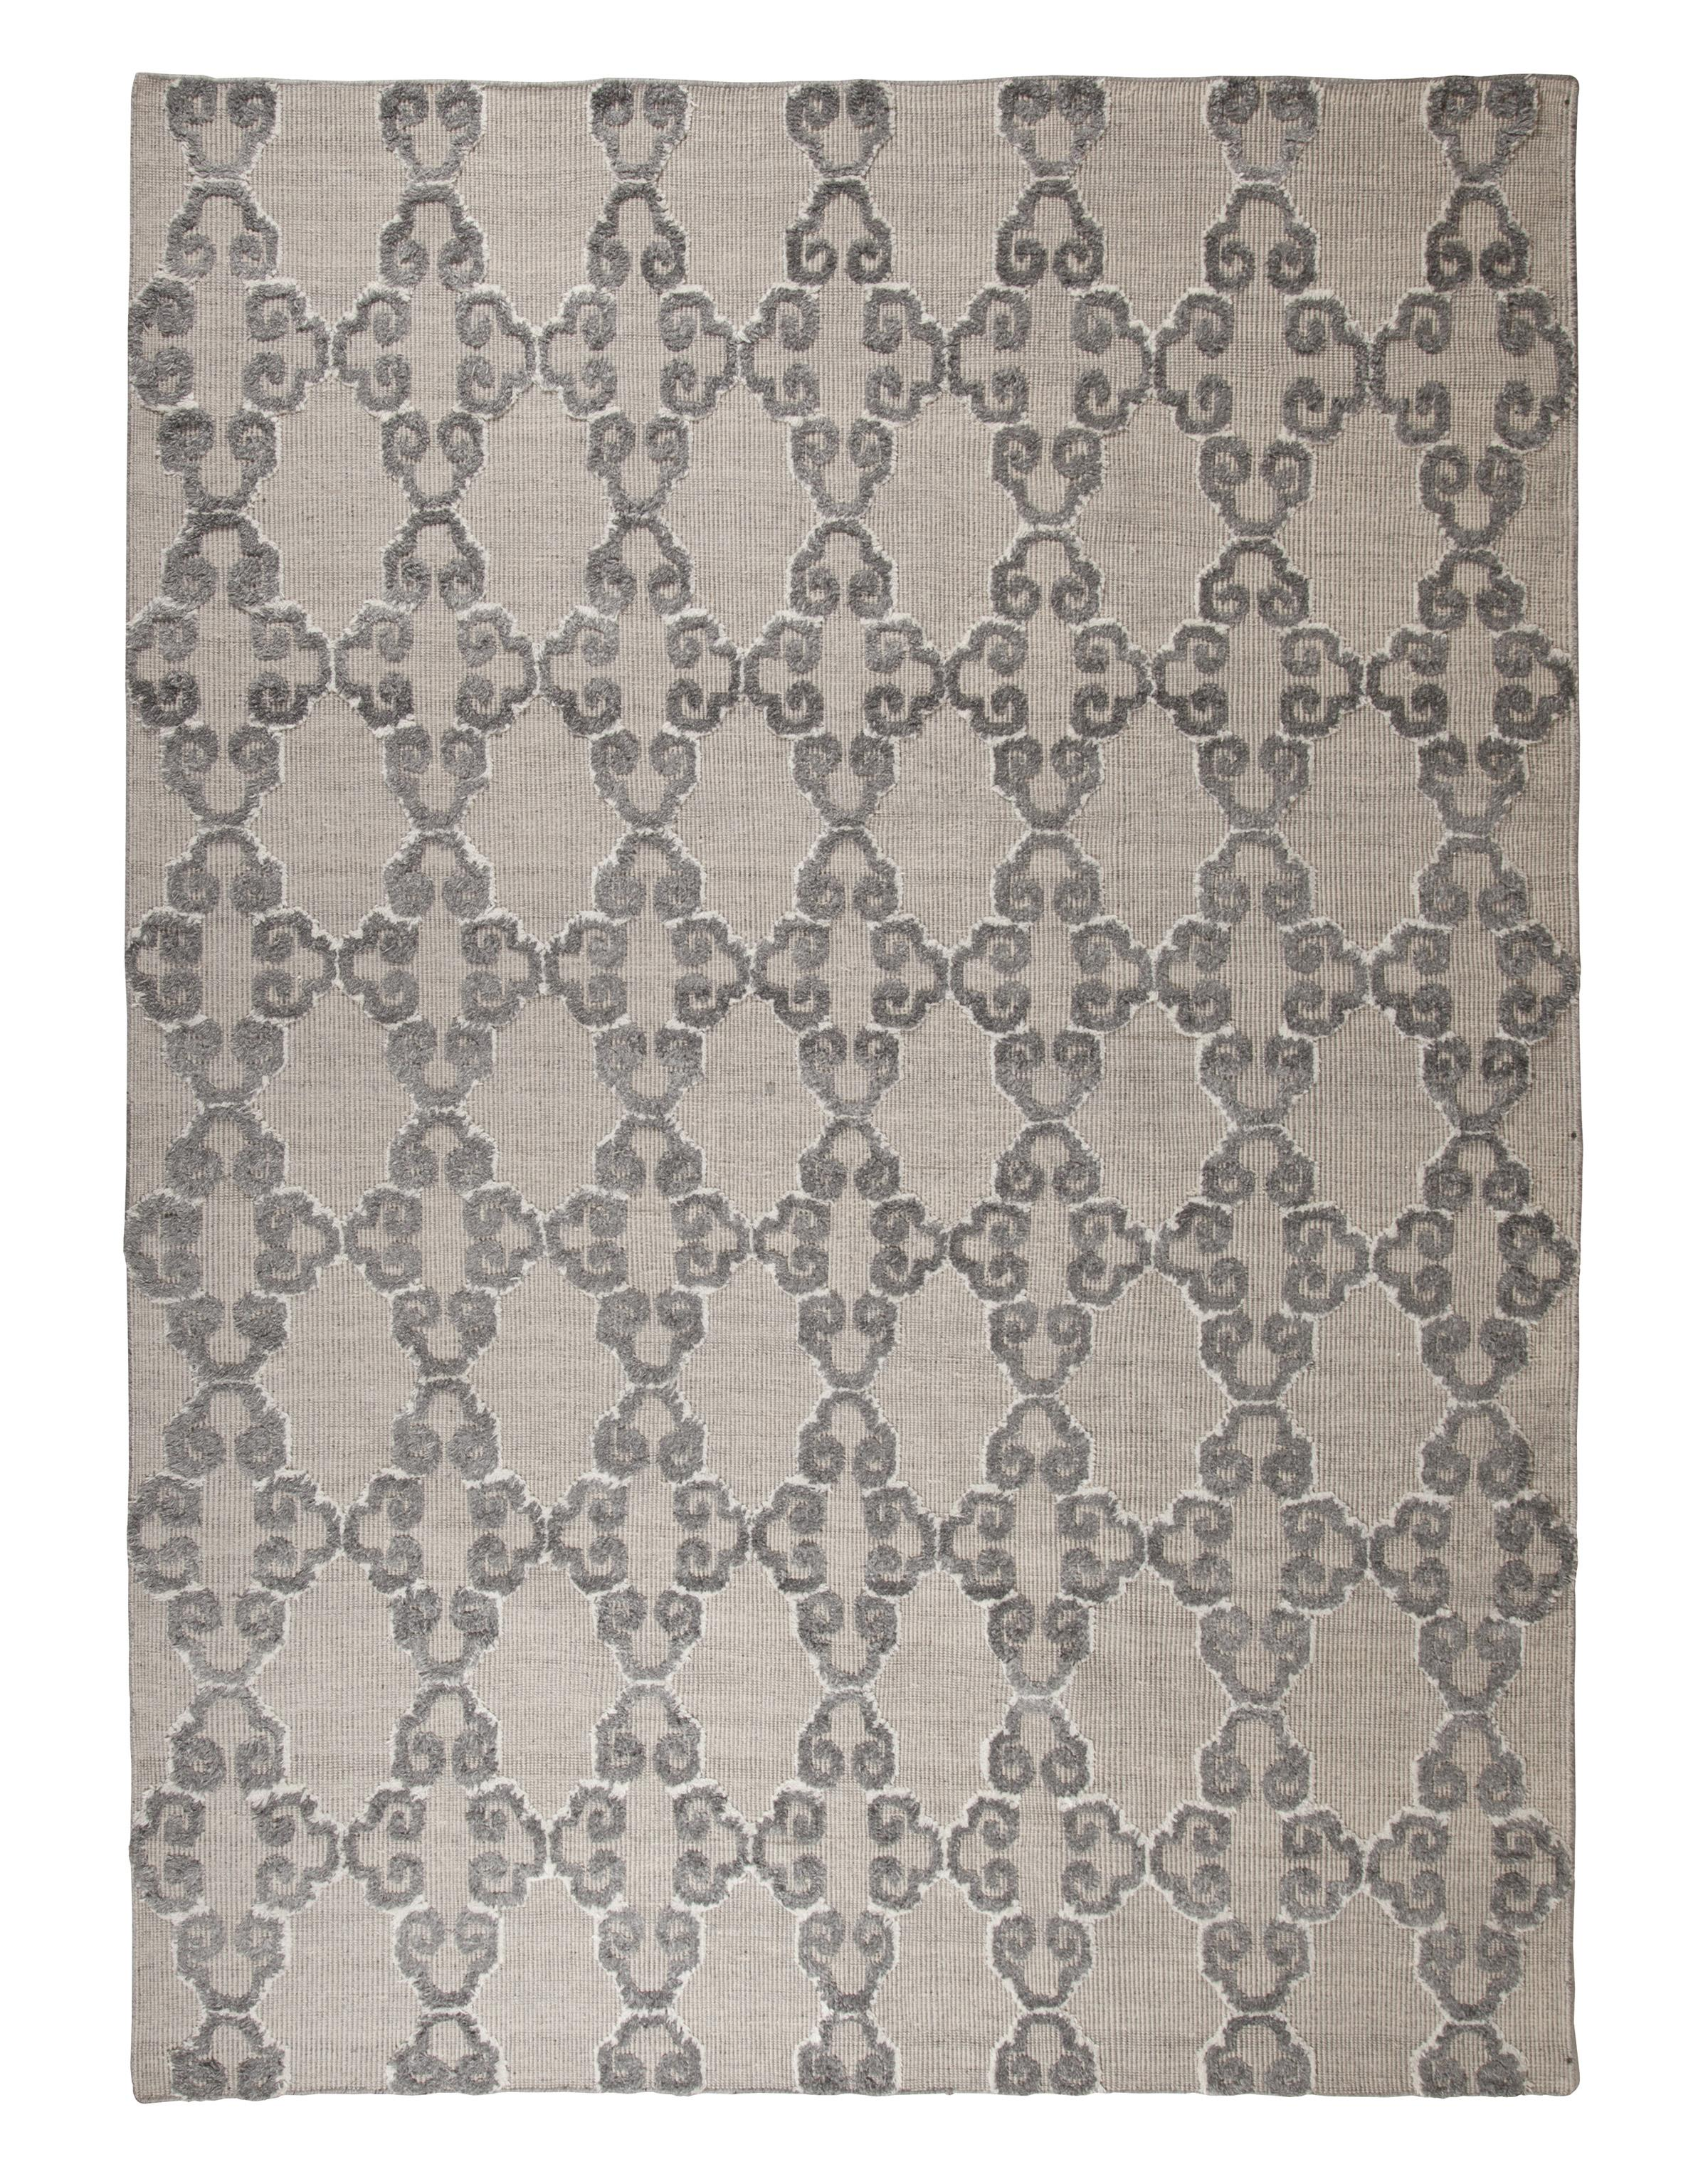 Traditional Classics Area Rugs Patterned - Gray/Ivory Medium Rug by Signature Design at Fisher Home Furnishings